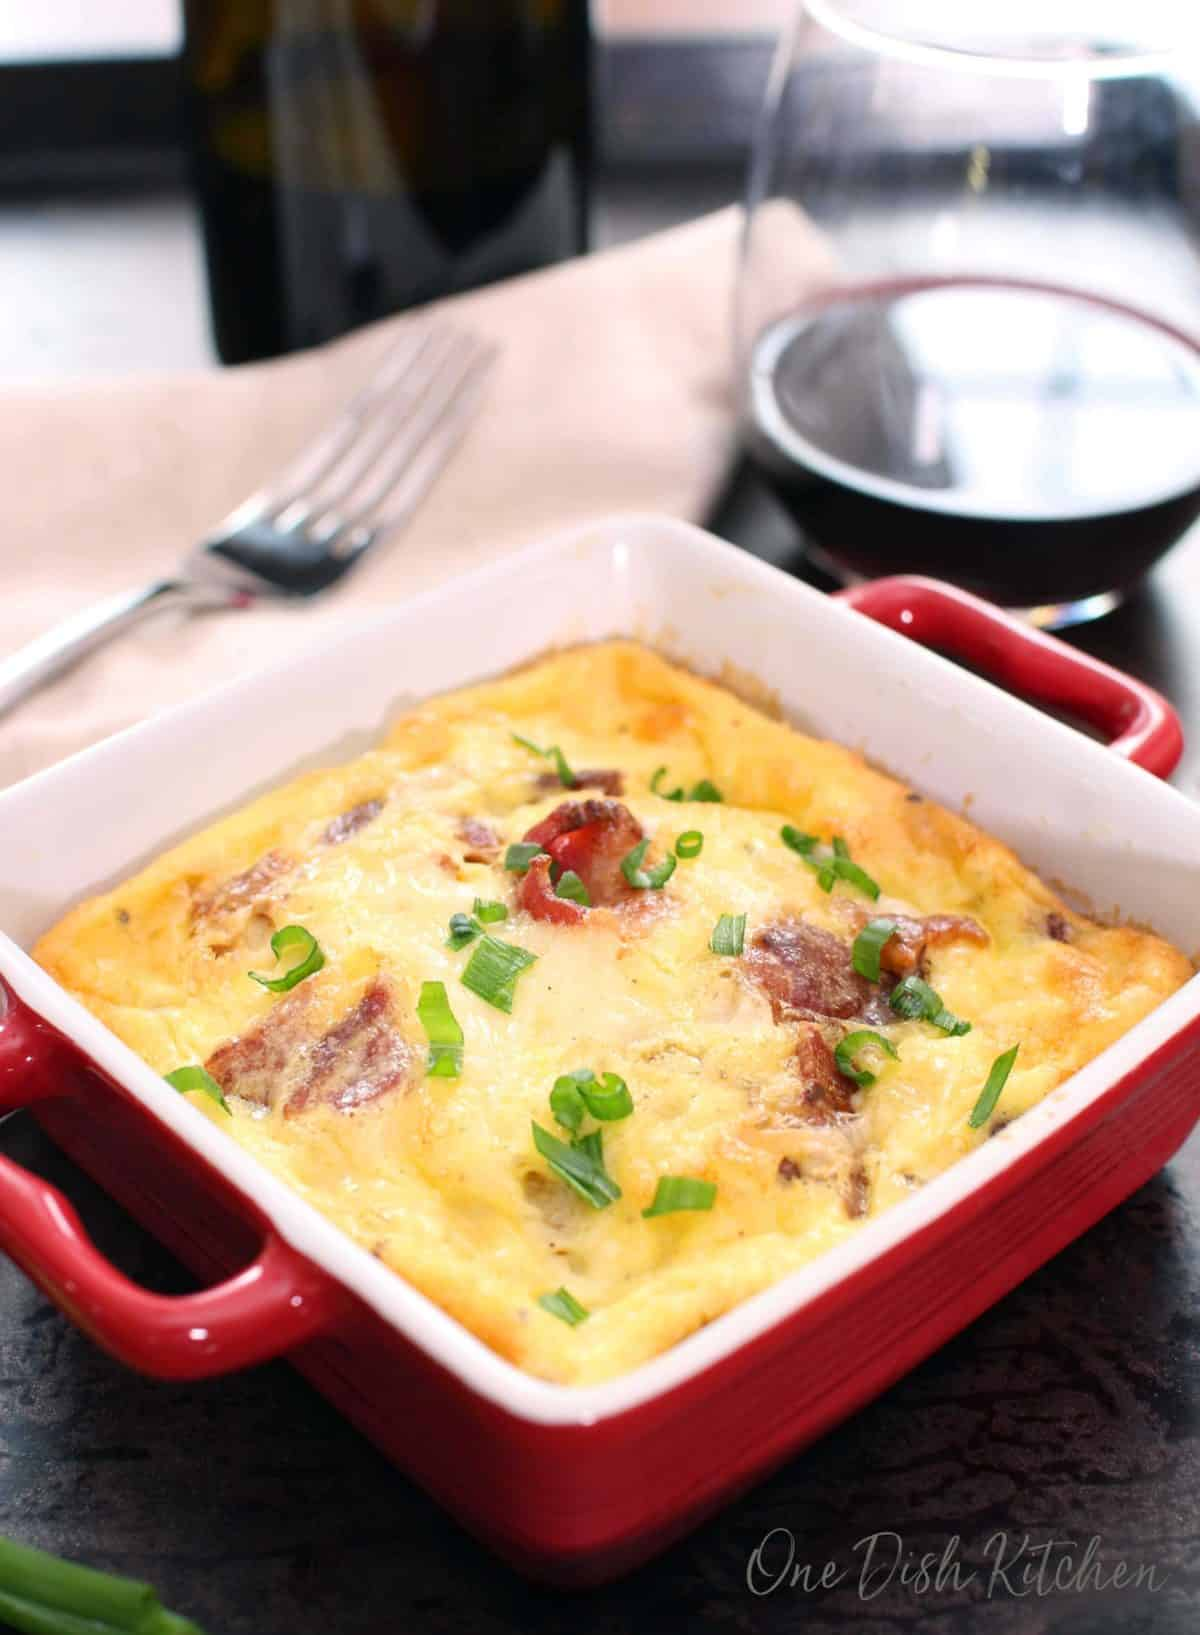 Crustless quiche lorraine baked in a small baking dish on a tray with a glass of red wine